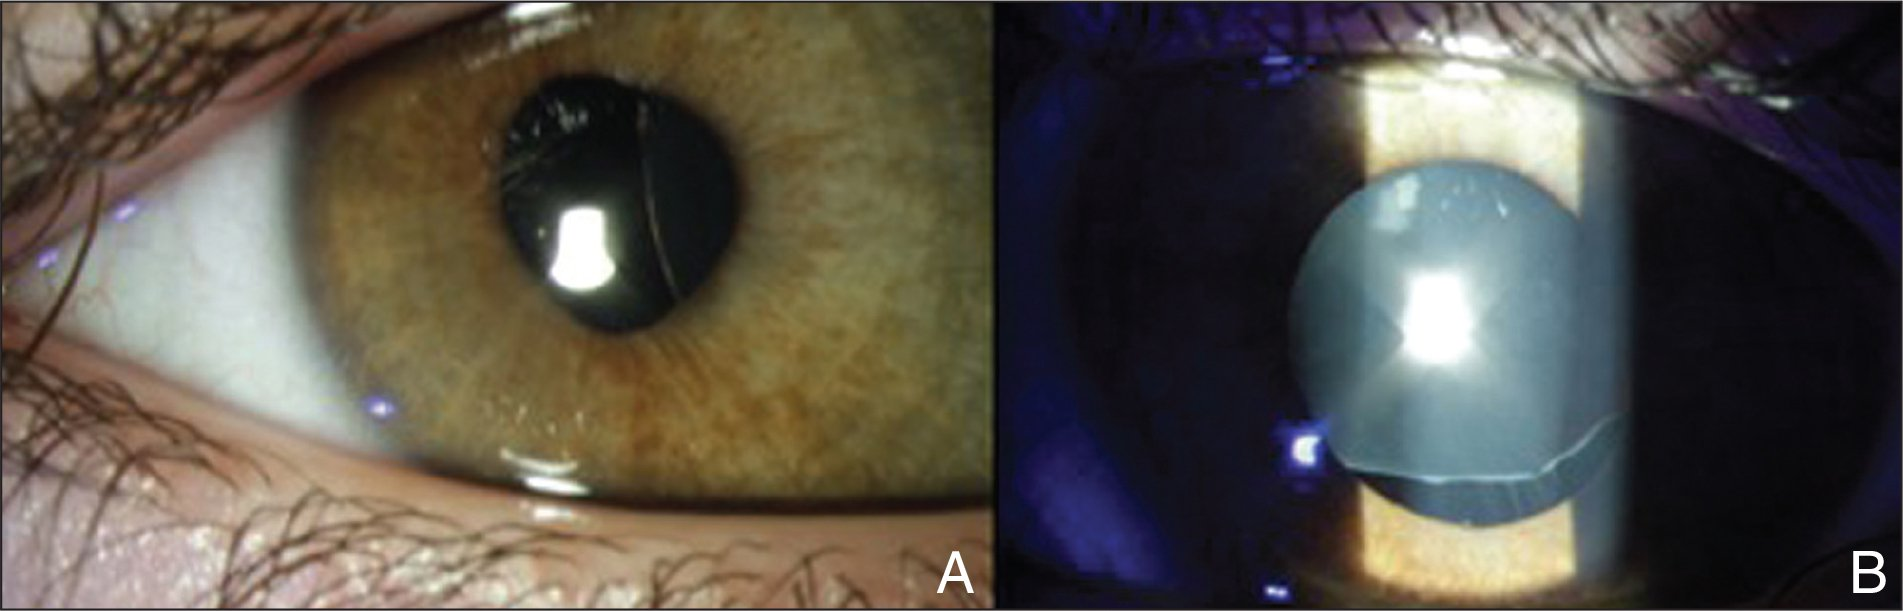 (A) Nasally displaced lens in the right eye of the patient and (B) superiorly displaced lens in the left eye of the patient.